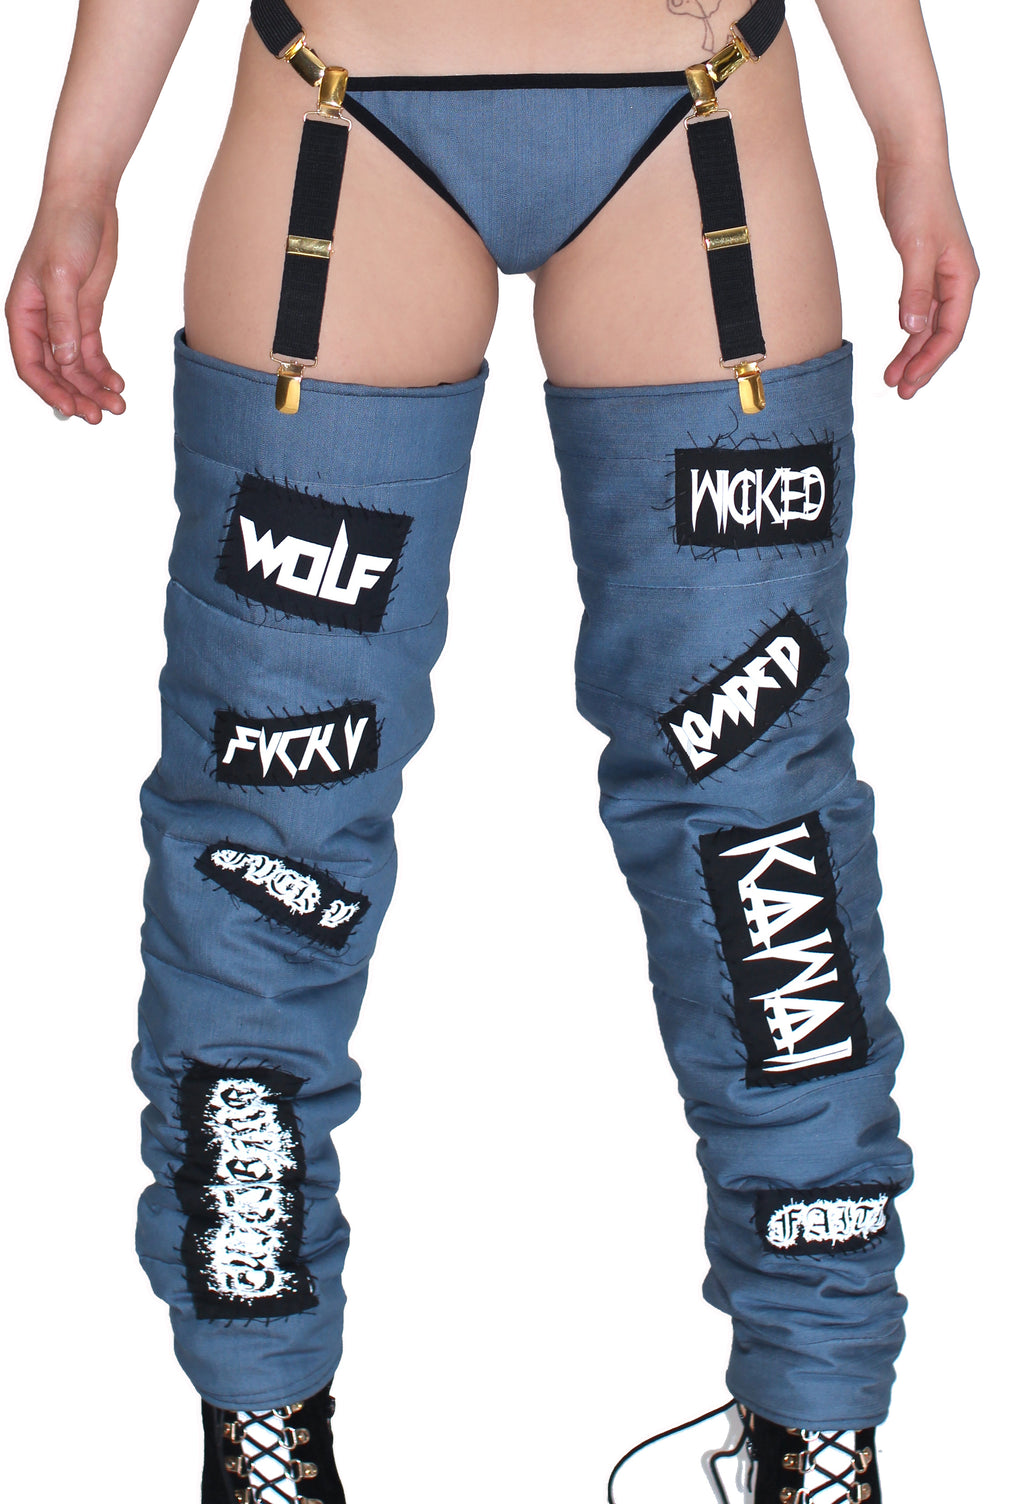 THE 'KAWAII' DENIM LEG WARMERS